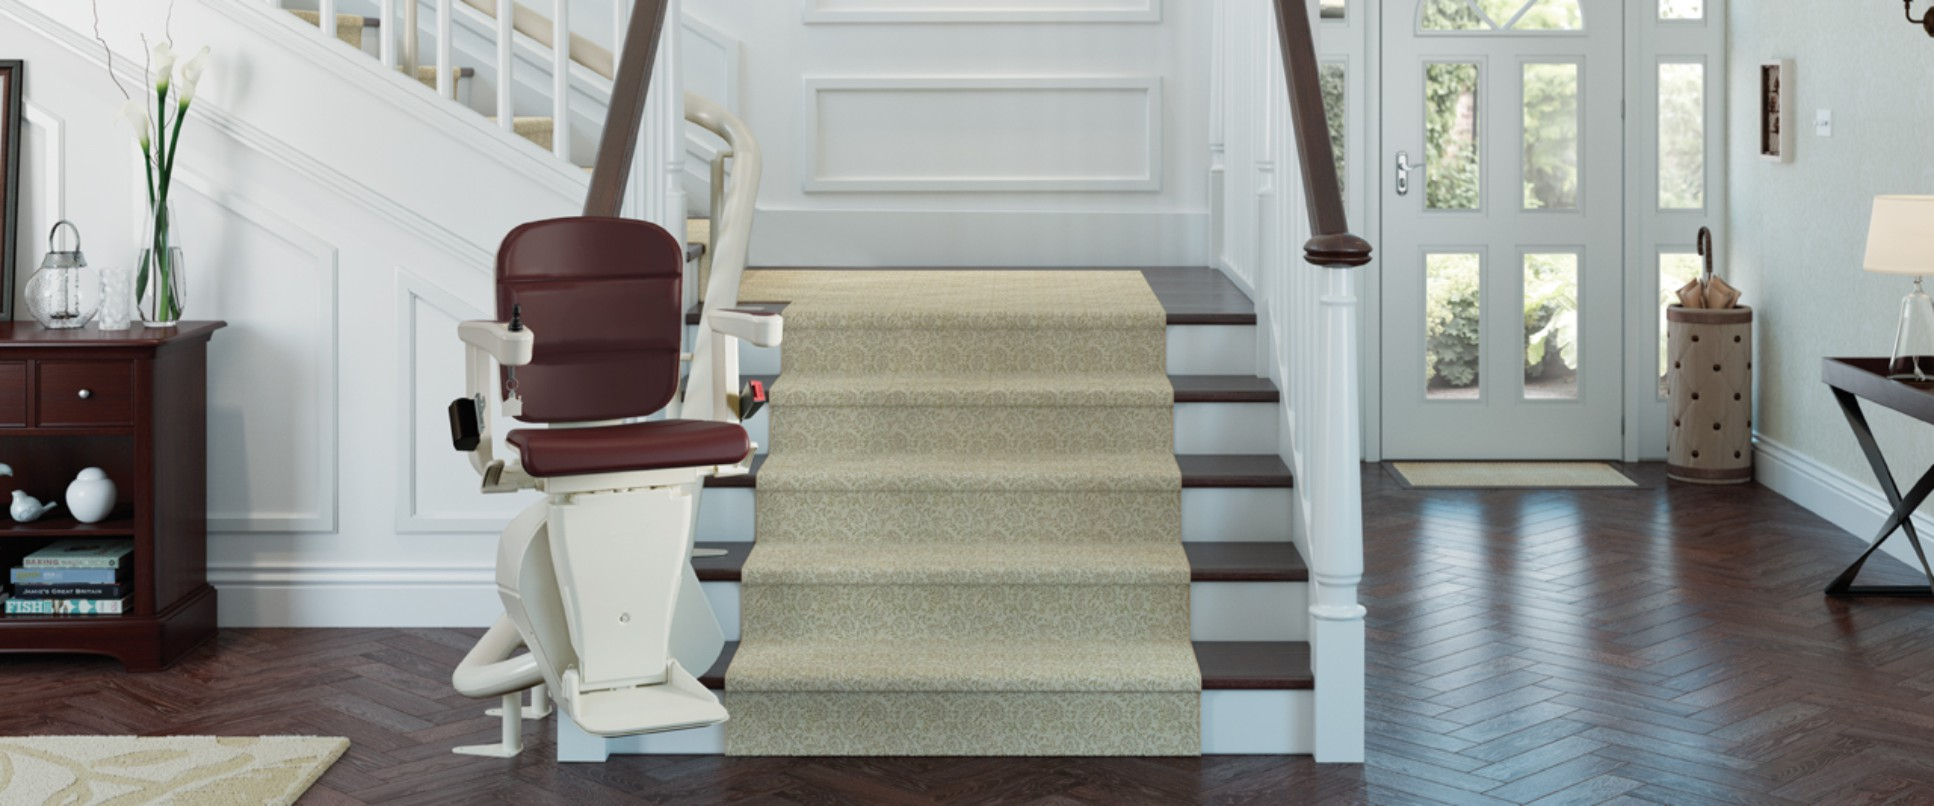 Stairlift Installers in Newton Abbot, Torquay, Exeter, Plymouth, South Devon.